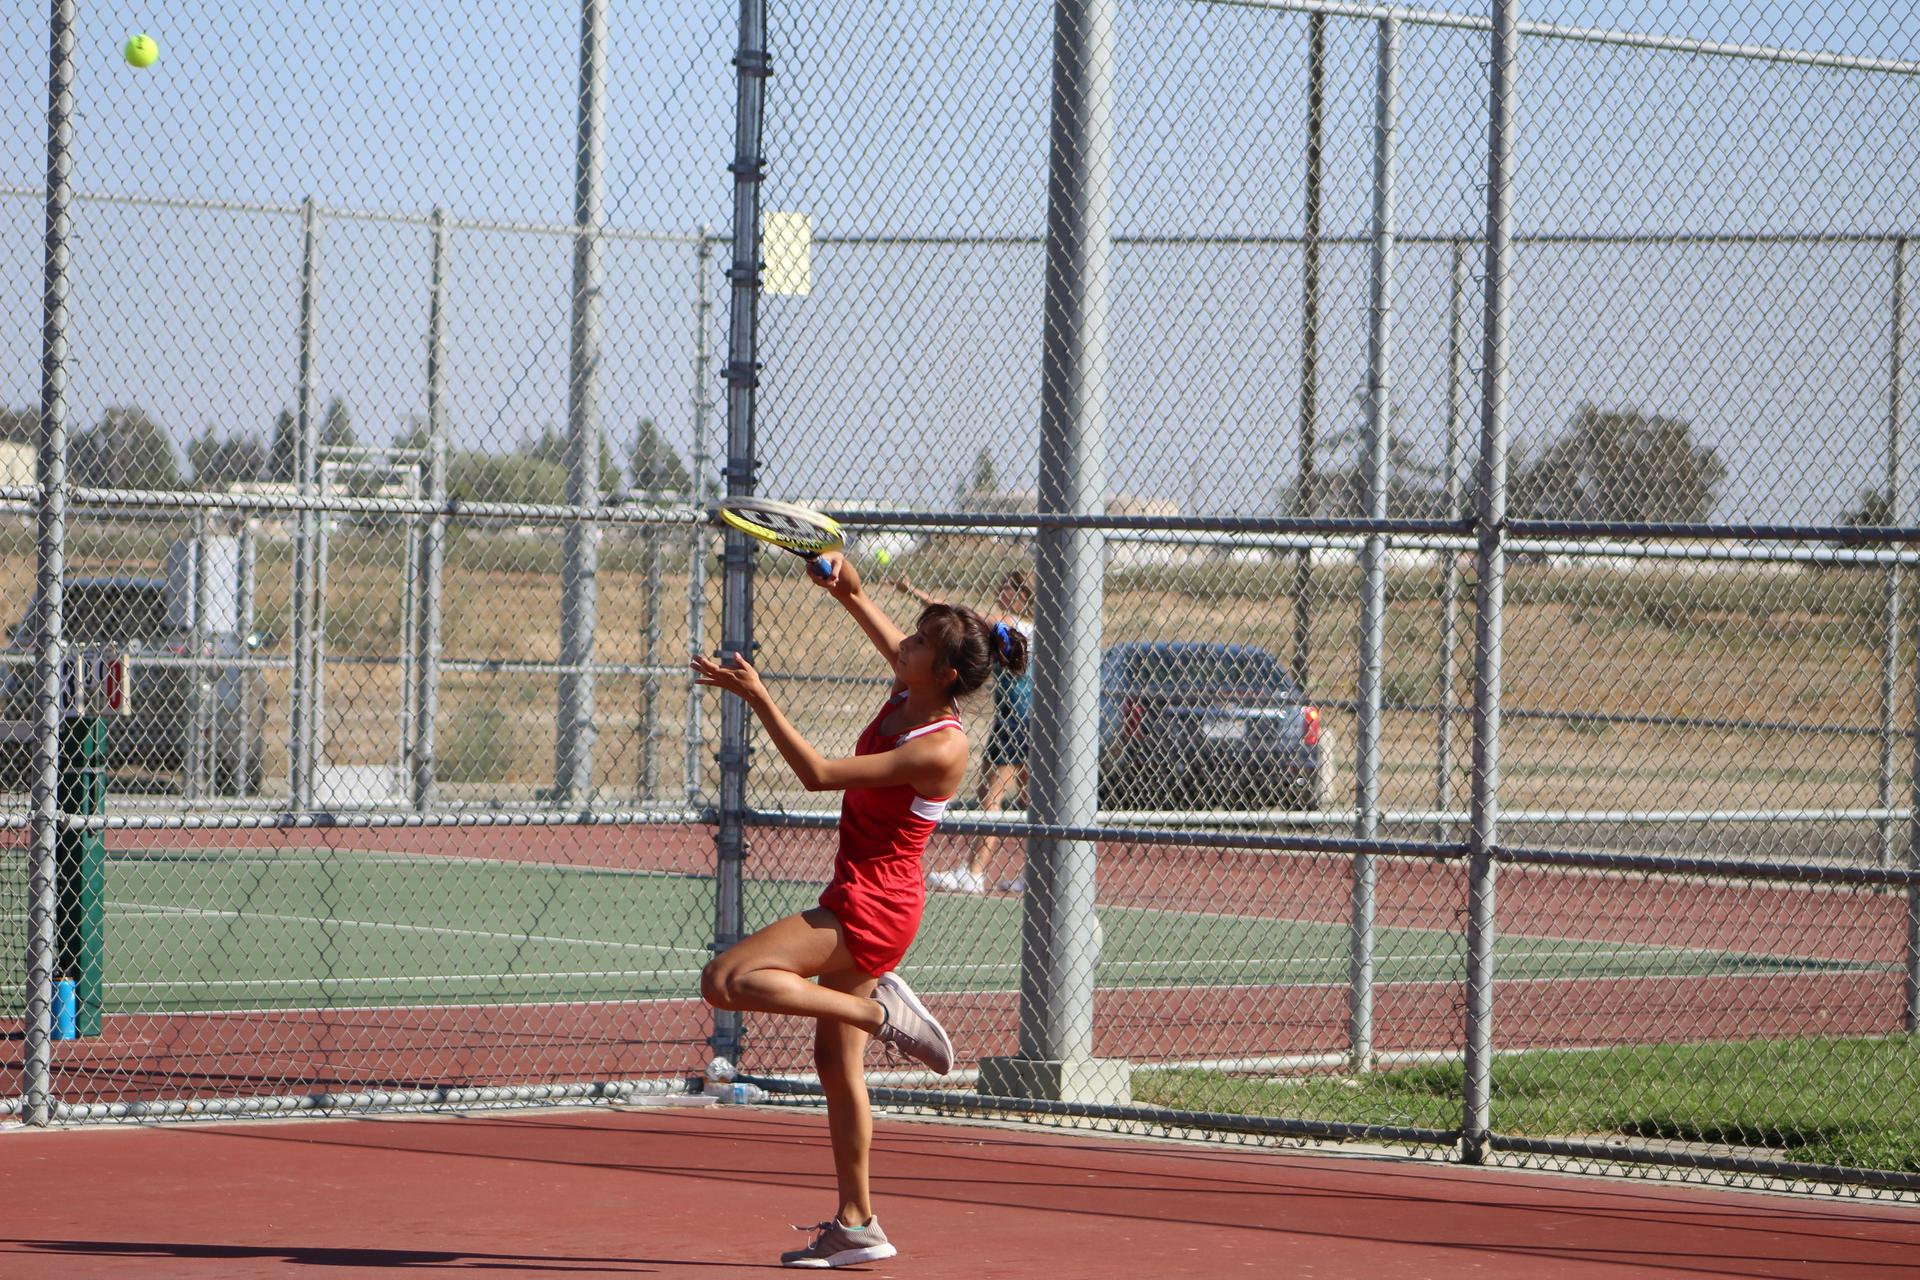 girls playing tennis against Yosemite